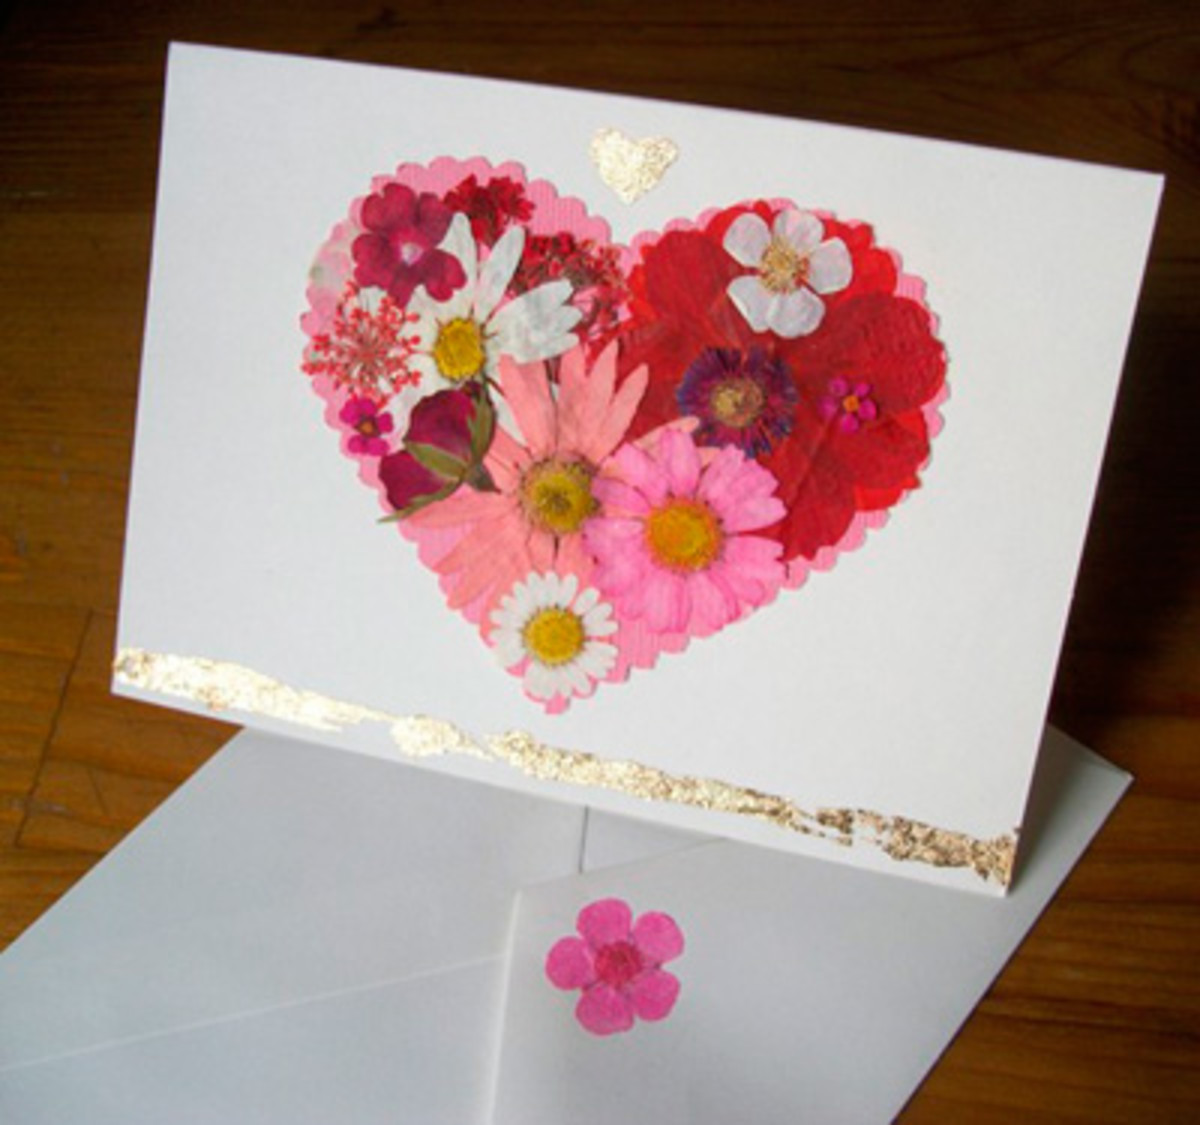 Children can make cards with the pressed flowers to give for birthdays, Christmases and other occasions.